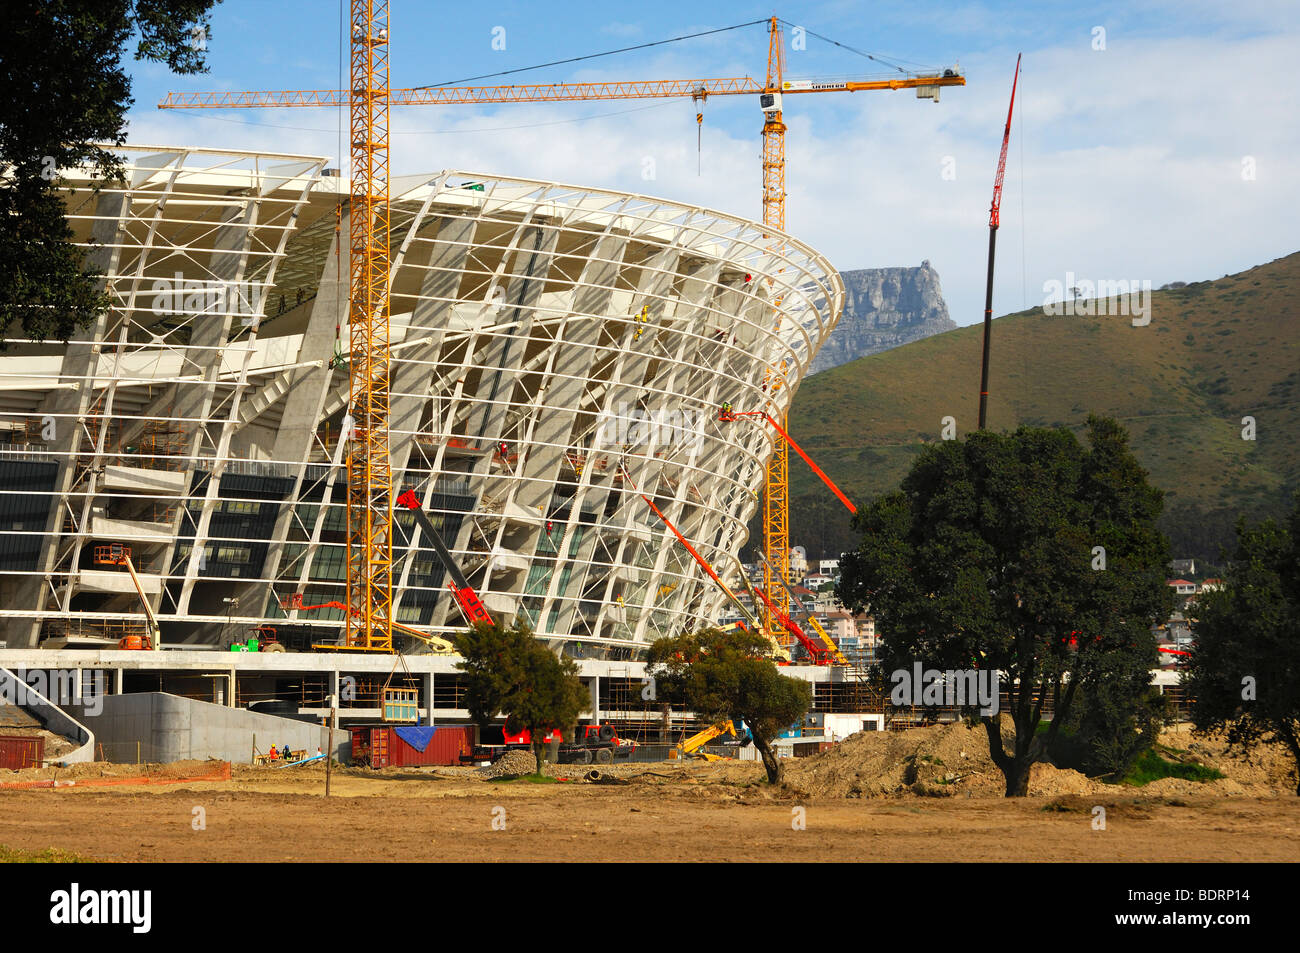 Soccer World Championship 2010, Greenpoint Soccer Stadium under construction, Cape Town, South Africa - Stock Image